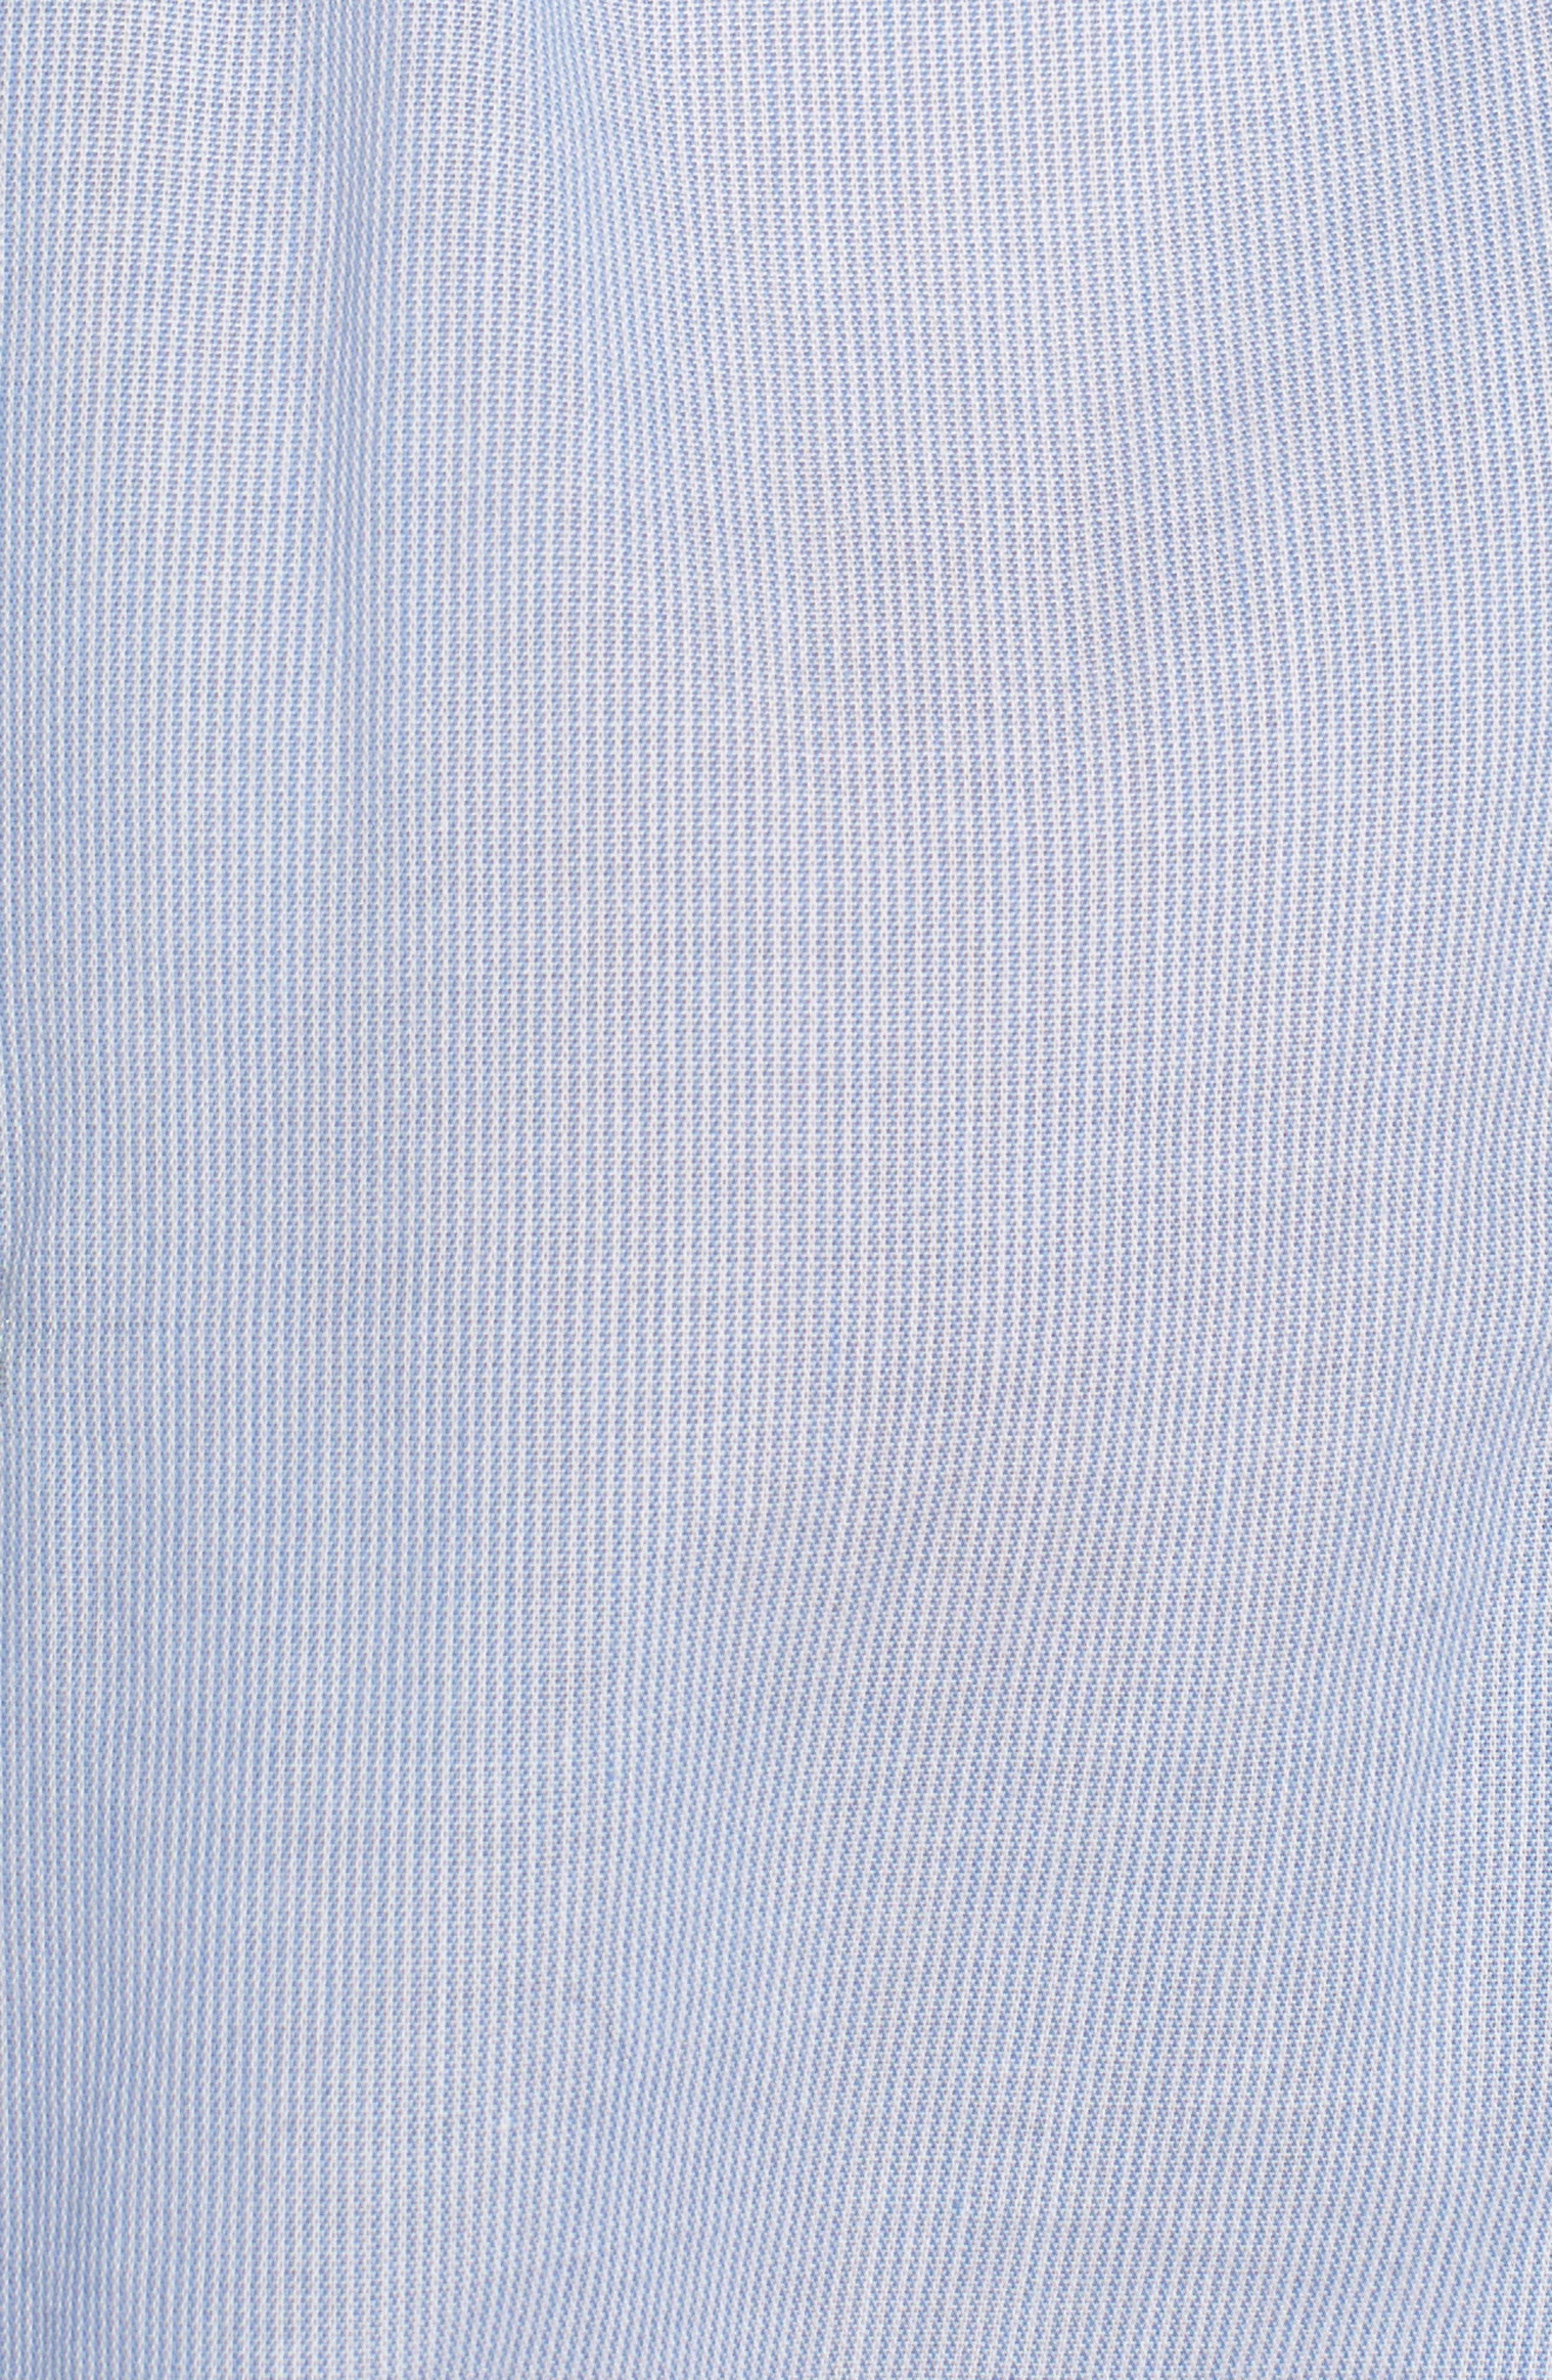 Embroidery Tie Front Cotton Top,                             Alternate thumbnail 5, color,                             Blue Mini Pear